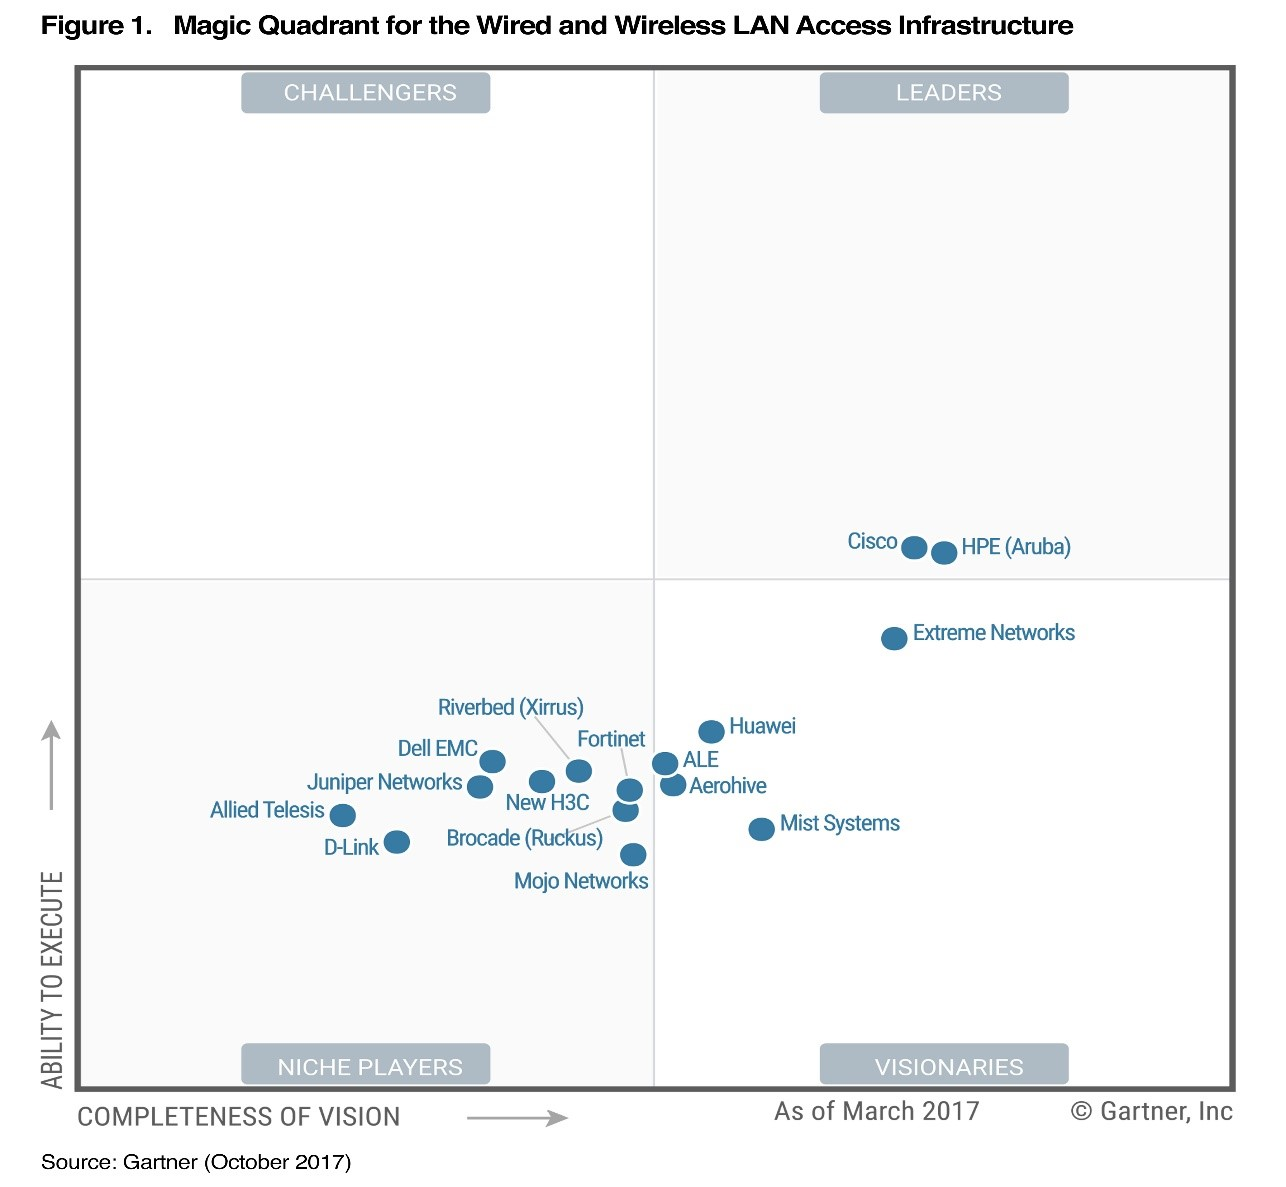 HPE Aruba: A Leader in the Gartner Magic Quadrant     - Hewlett